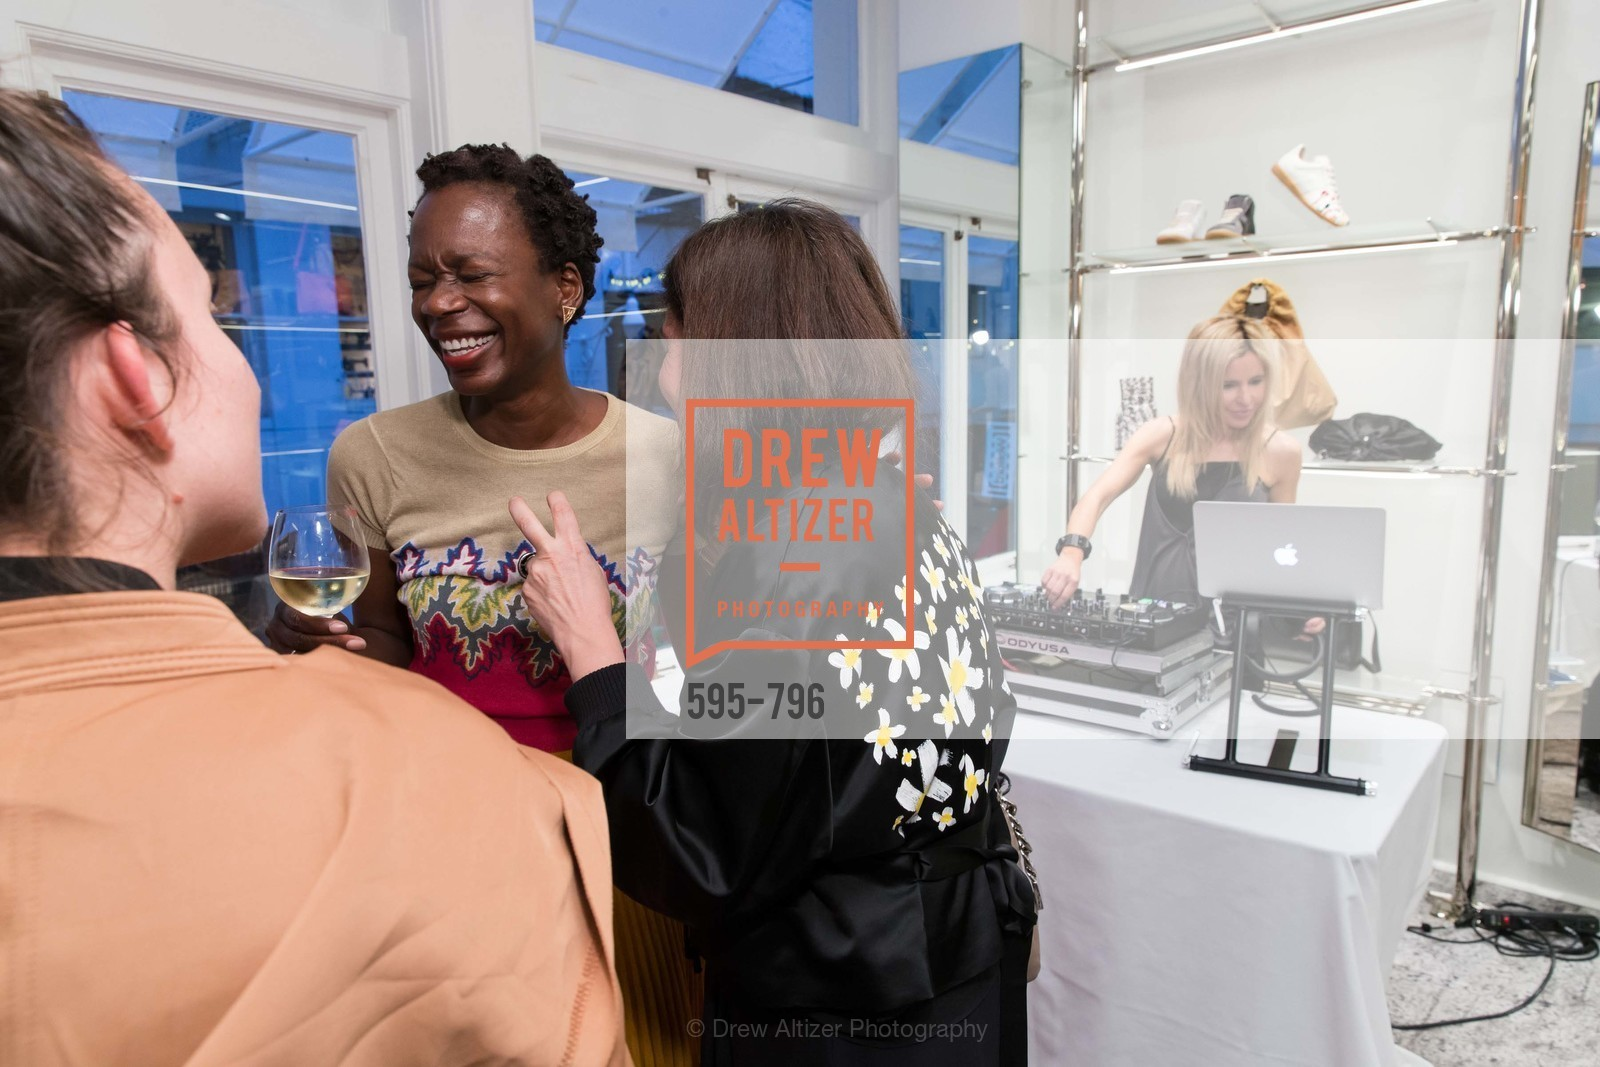 Lola Oladunjoye, Laura Giulini, Lana Adair, MAISON MARGIELA San Francisco Boutique Grand Opening Event, US, April 24th, 2015,Drew Altizer, Drew Altizer Photography, full-service event agency, private events, San Francisco photographer, photographer California